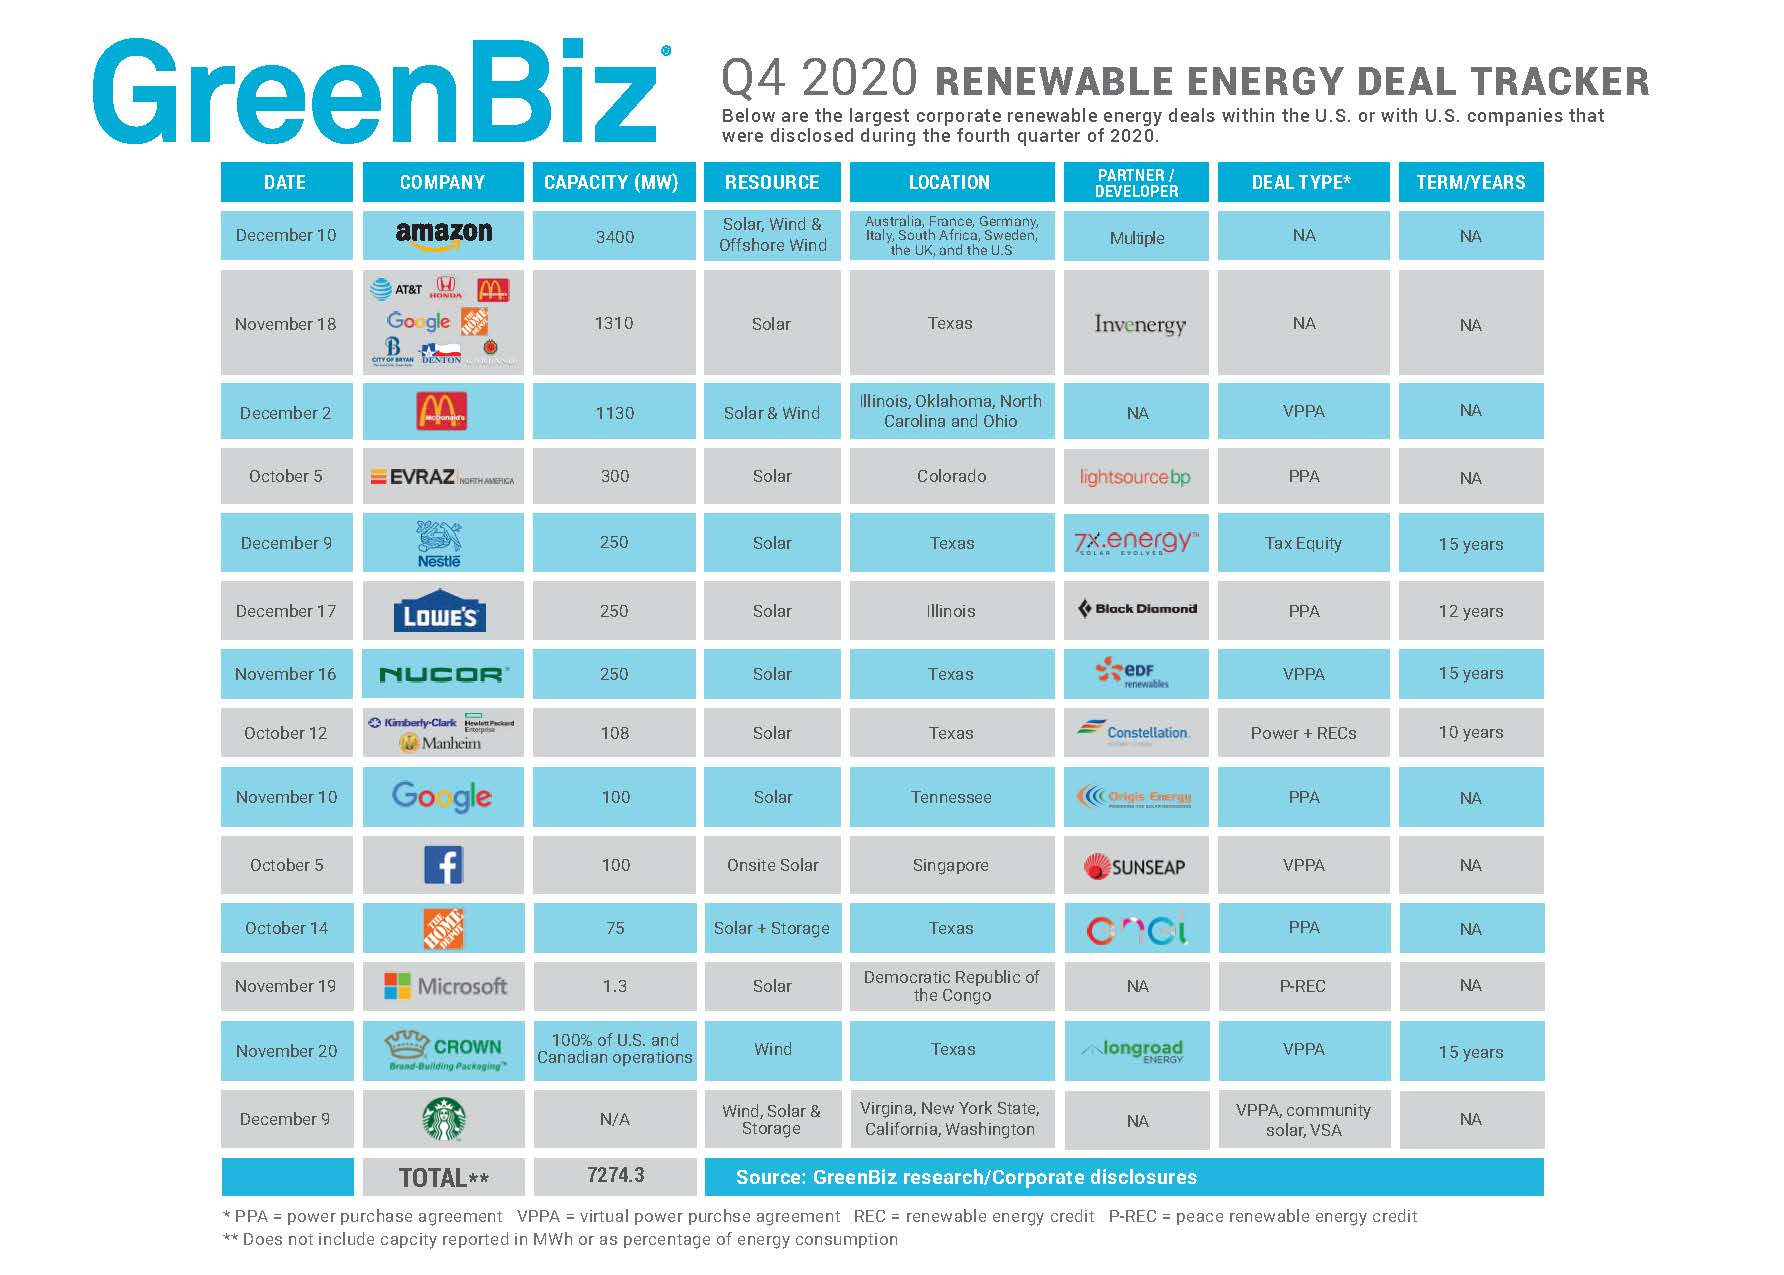 Q4 2020 Clean Energy Deal Tracker